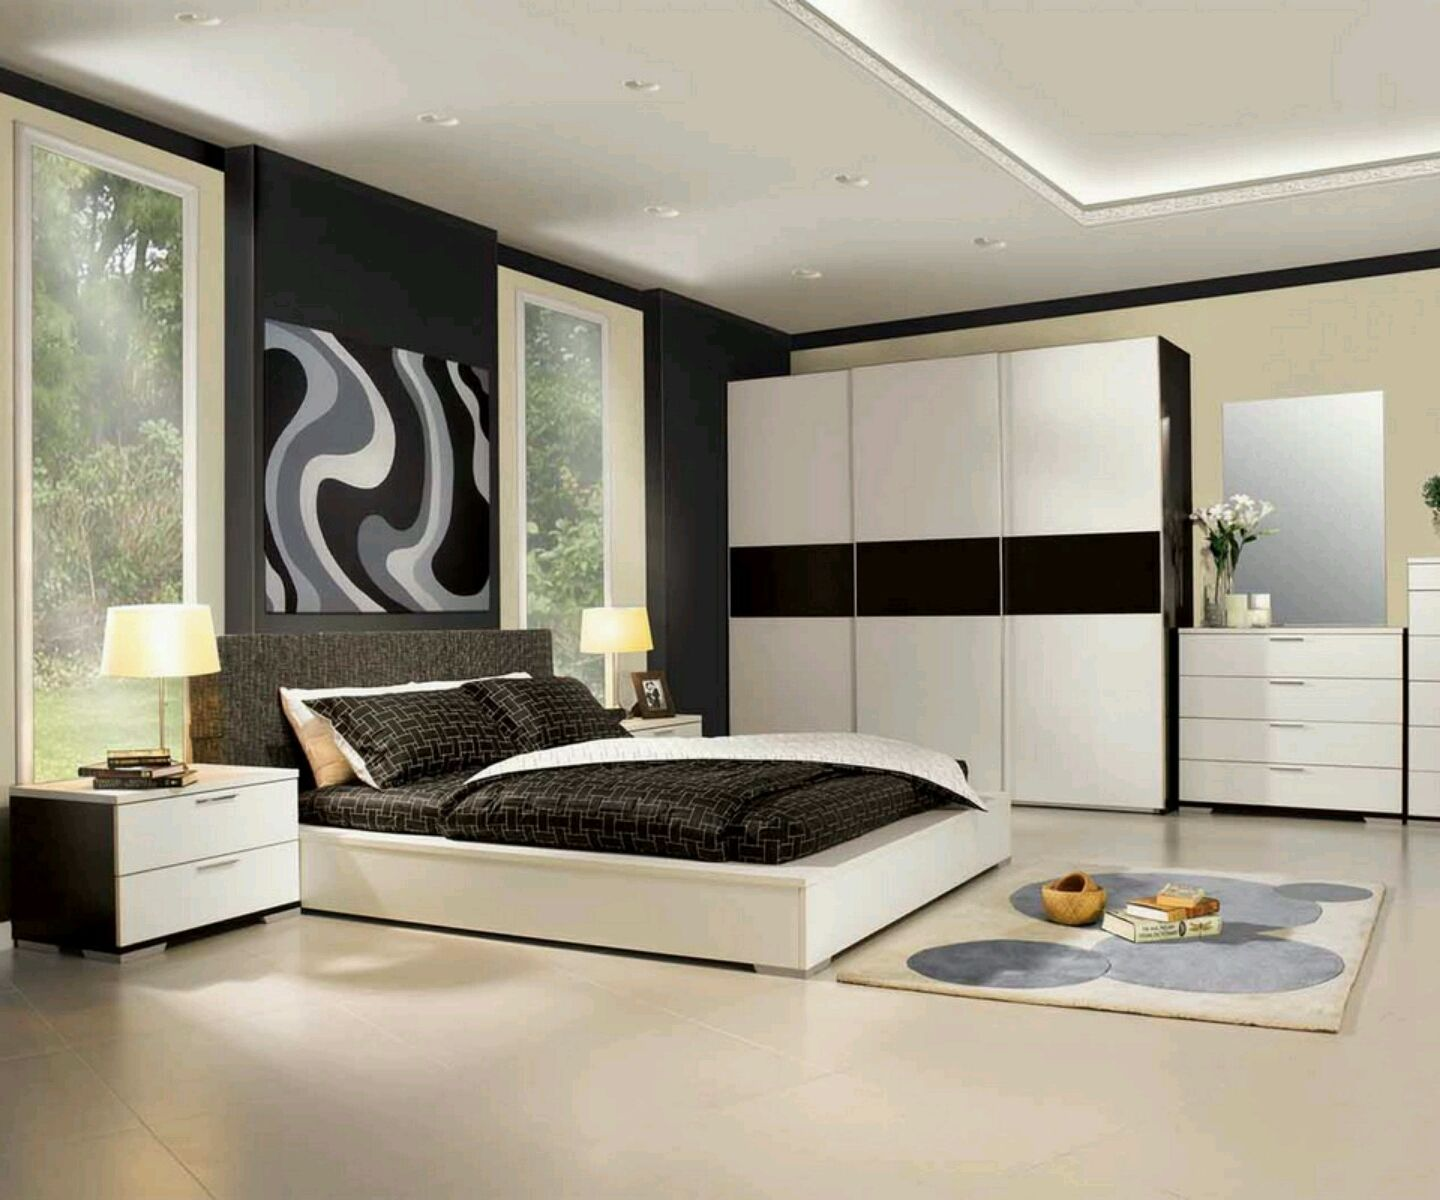 modern bedroom furniture design for more pictures and design ideas please visit my blog http - Bedroom Interior Design Ideas